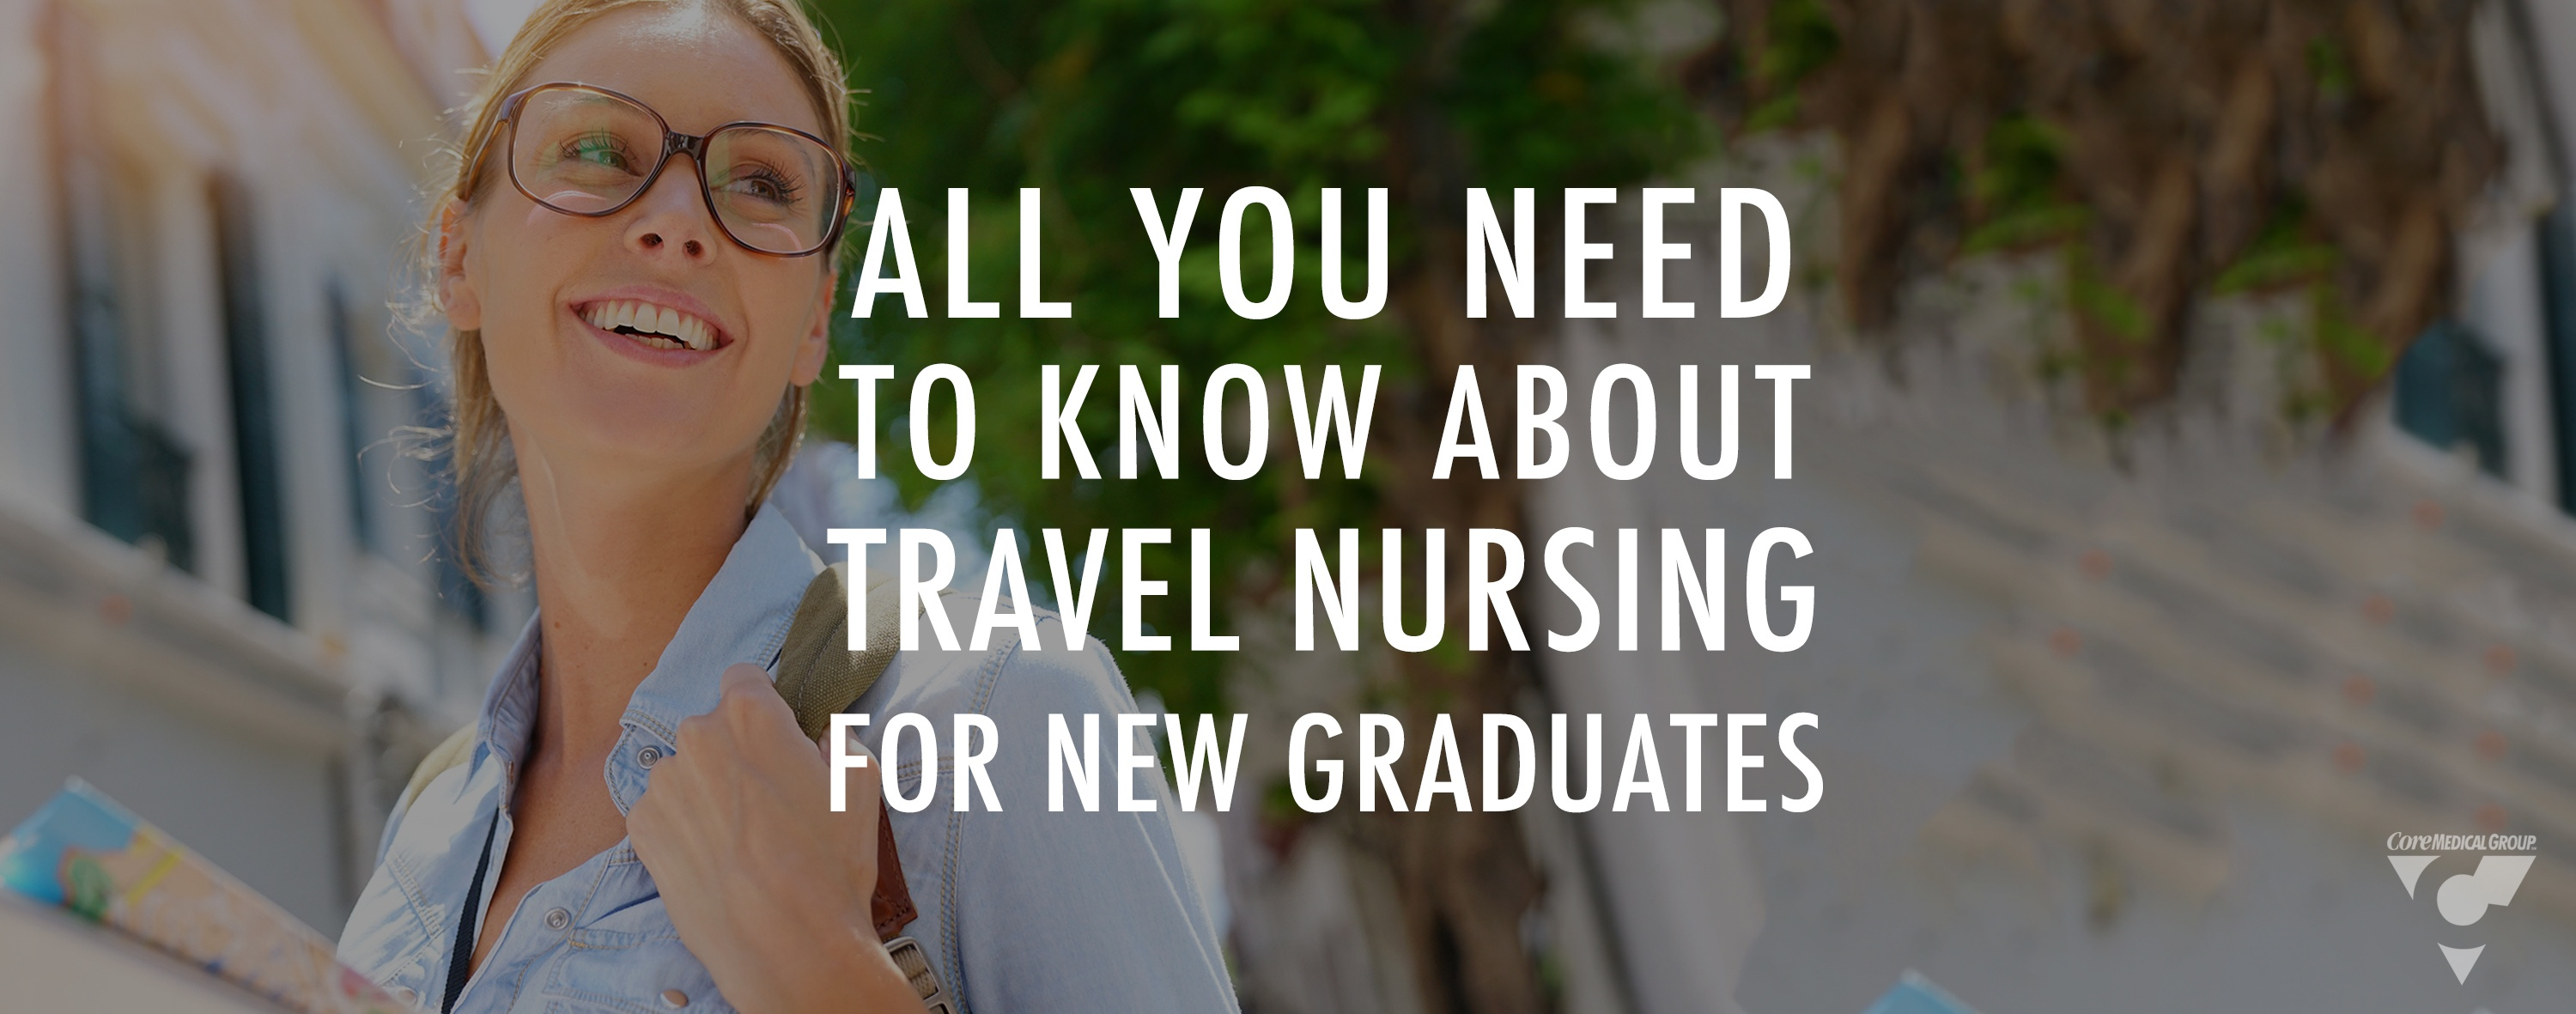 All You Need To Know About Travel Nursing For New Graduates